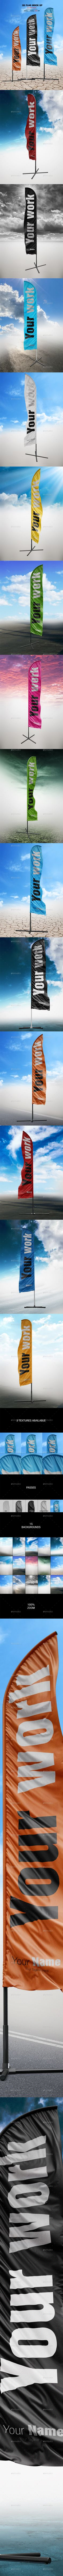 16 Realistic 3D Flag Mock Up`s — Photoshop PSD #zoomflag #drop flag • Download ➝ https://graphicriver.net/item/16-realistic-3d-flag-mock-ups/19665484?ref=pxcr